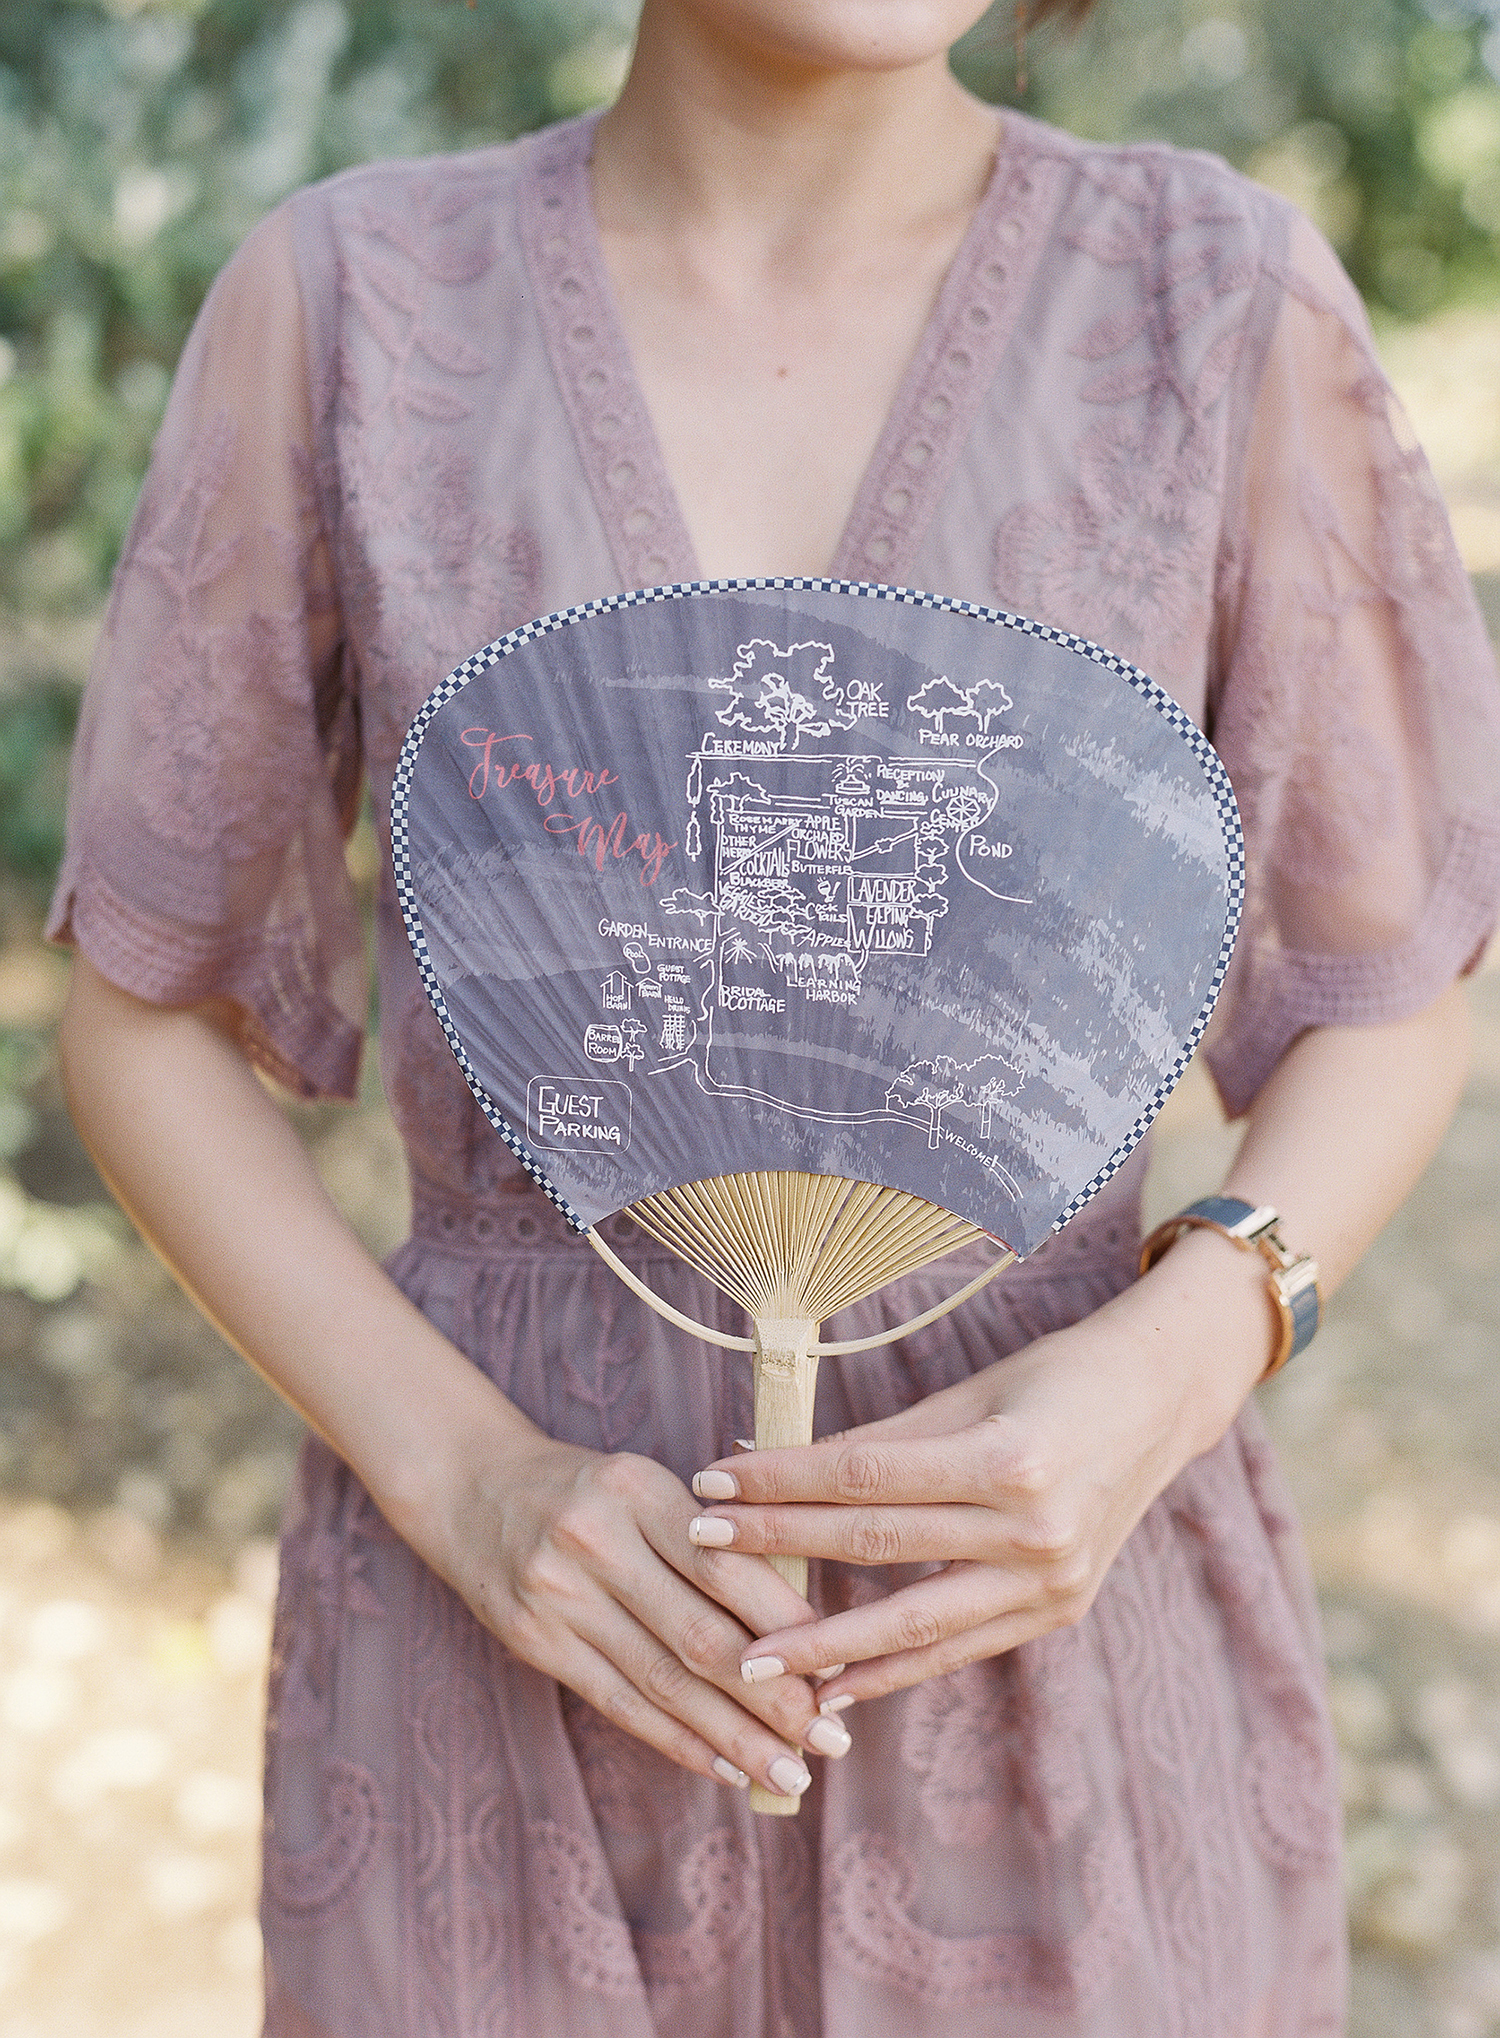 cloth ceremony program fan